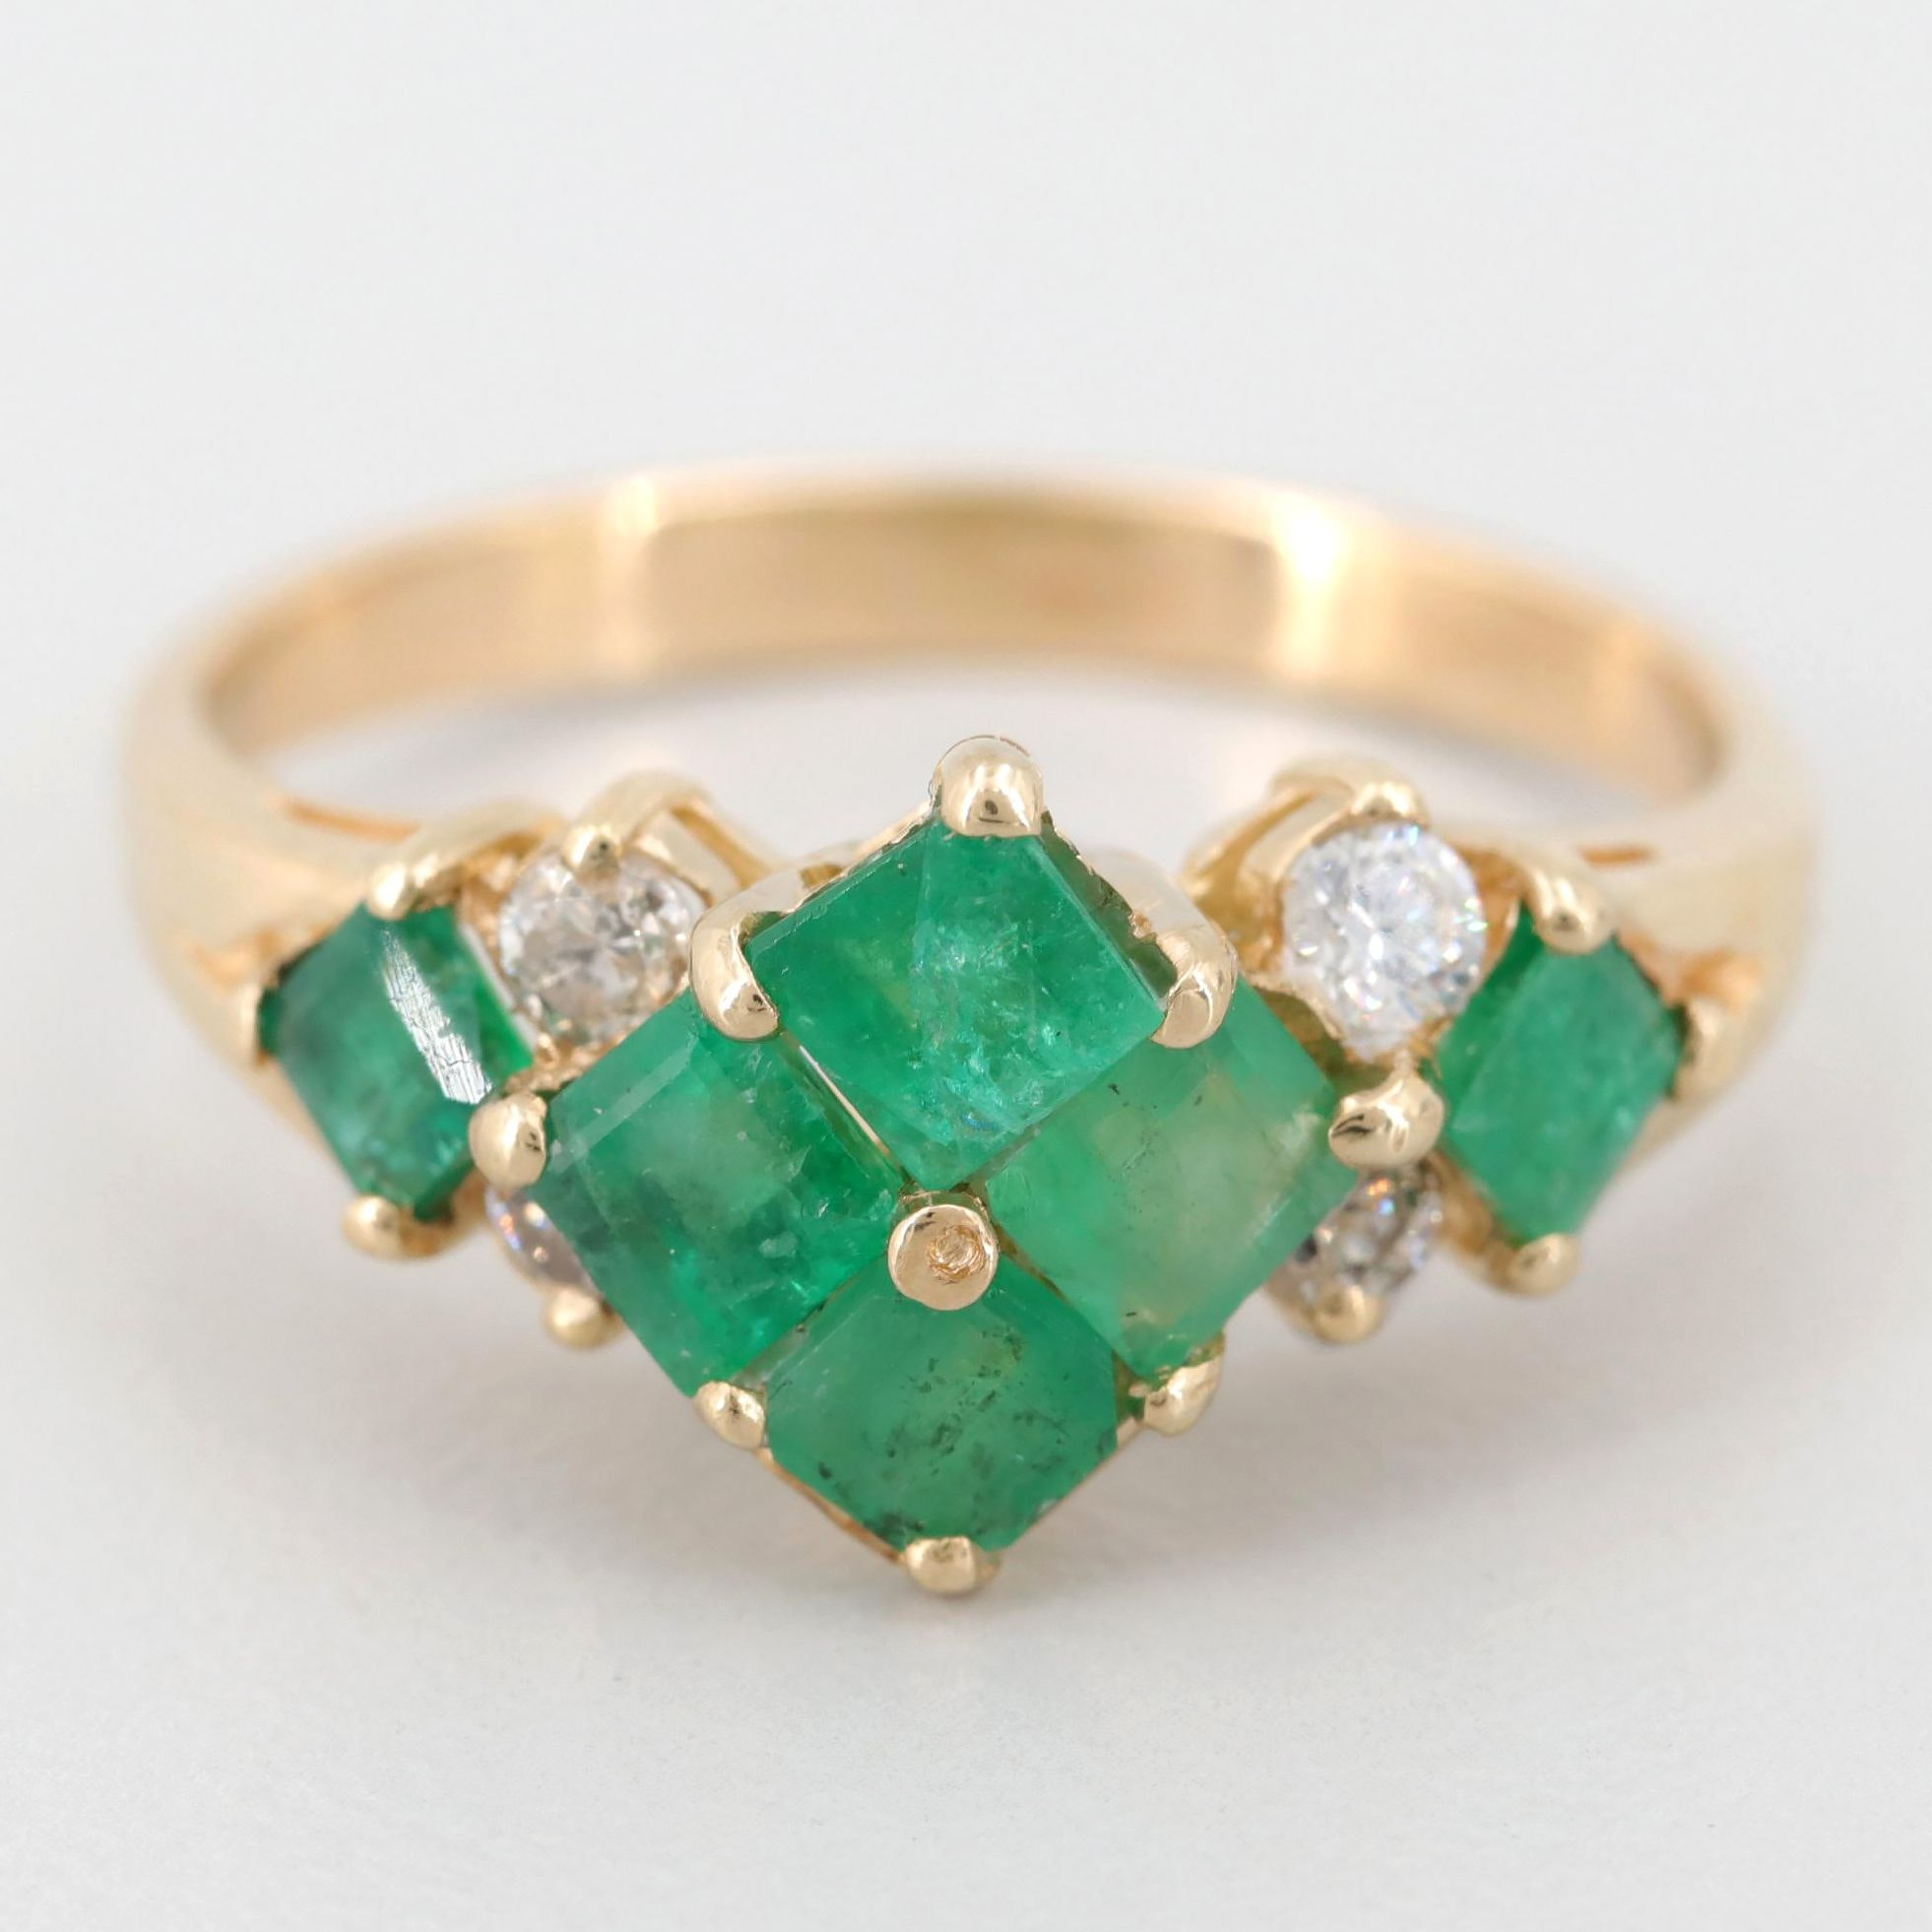 14K Yellow Gold Emerald, Diamond, and Cubic Zirconia Ring